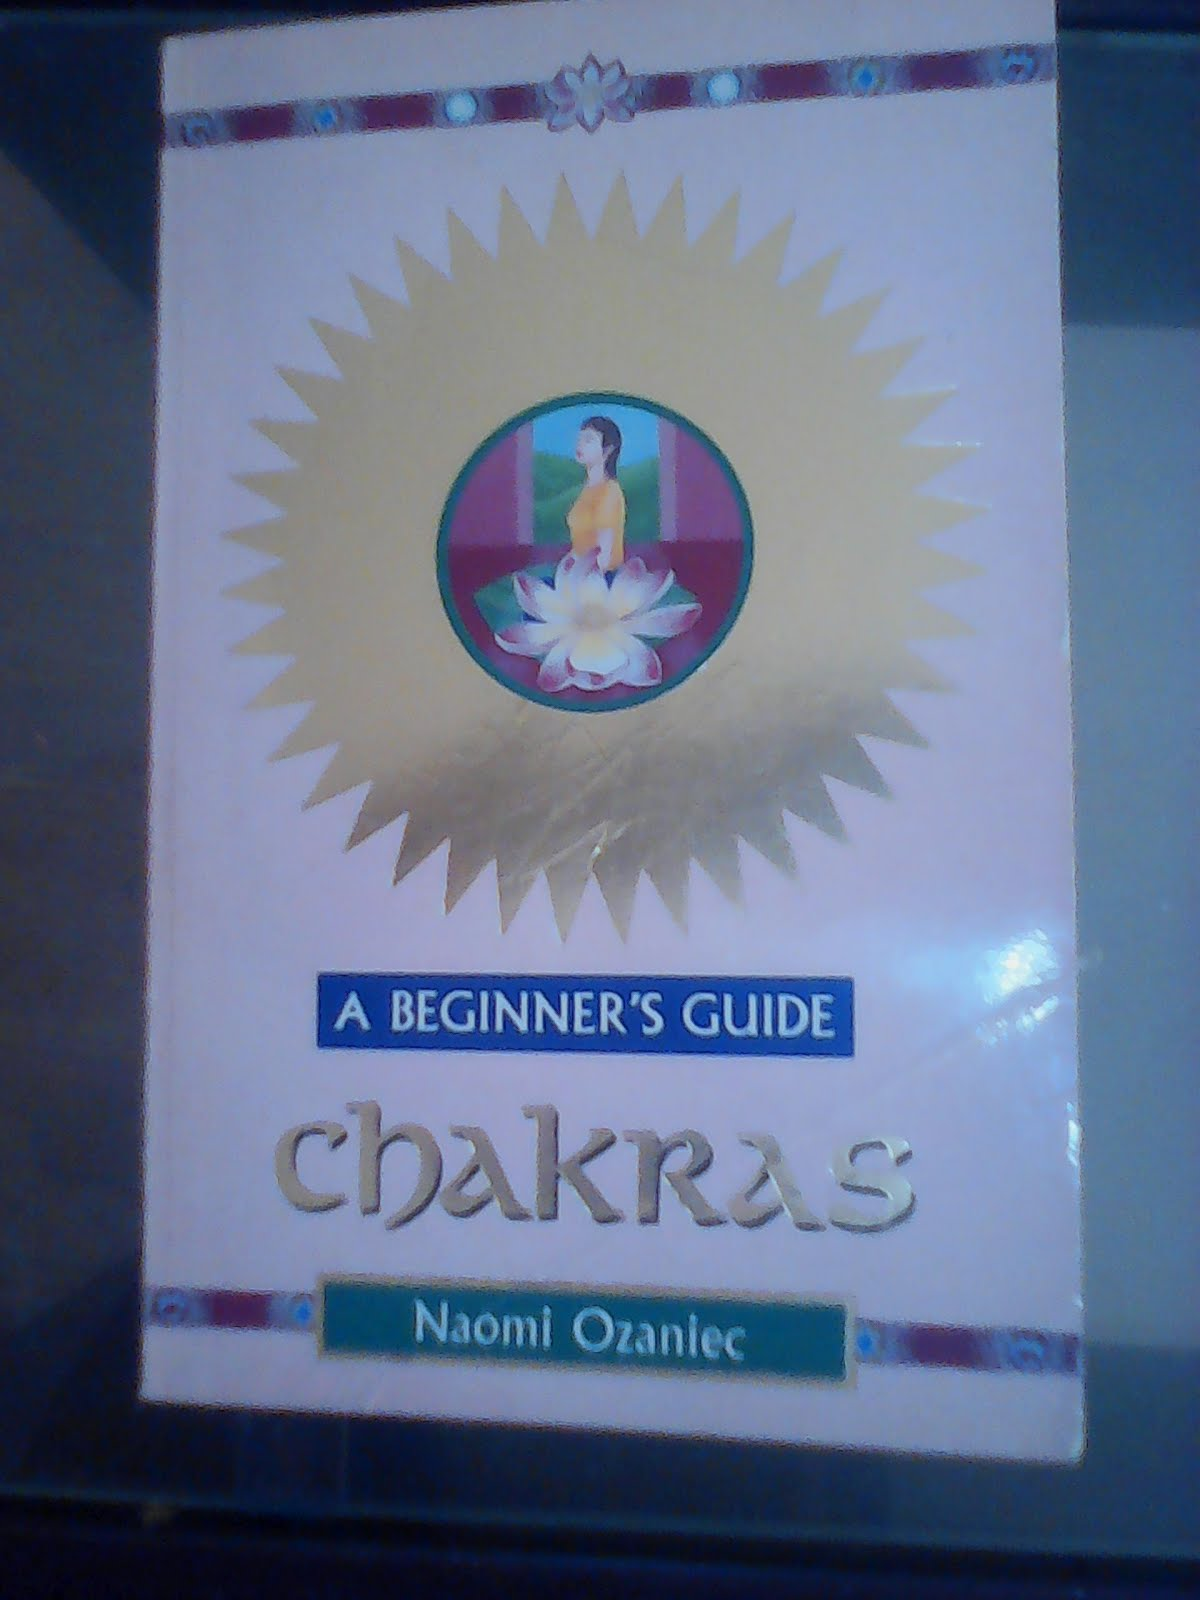 Chakras: A Beginner's Guide.